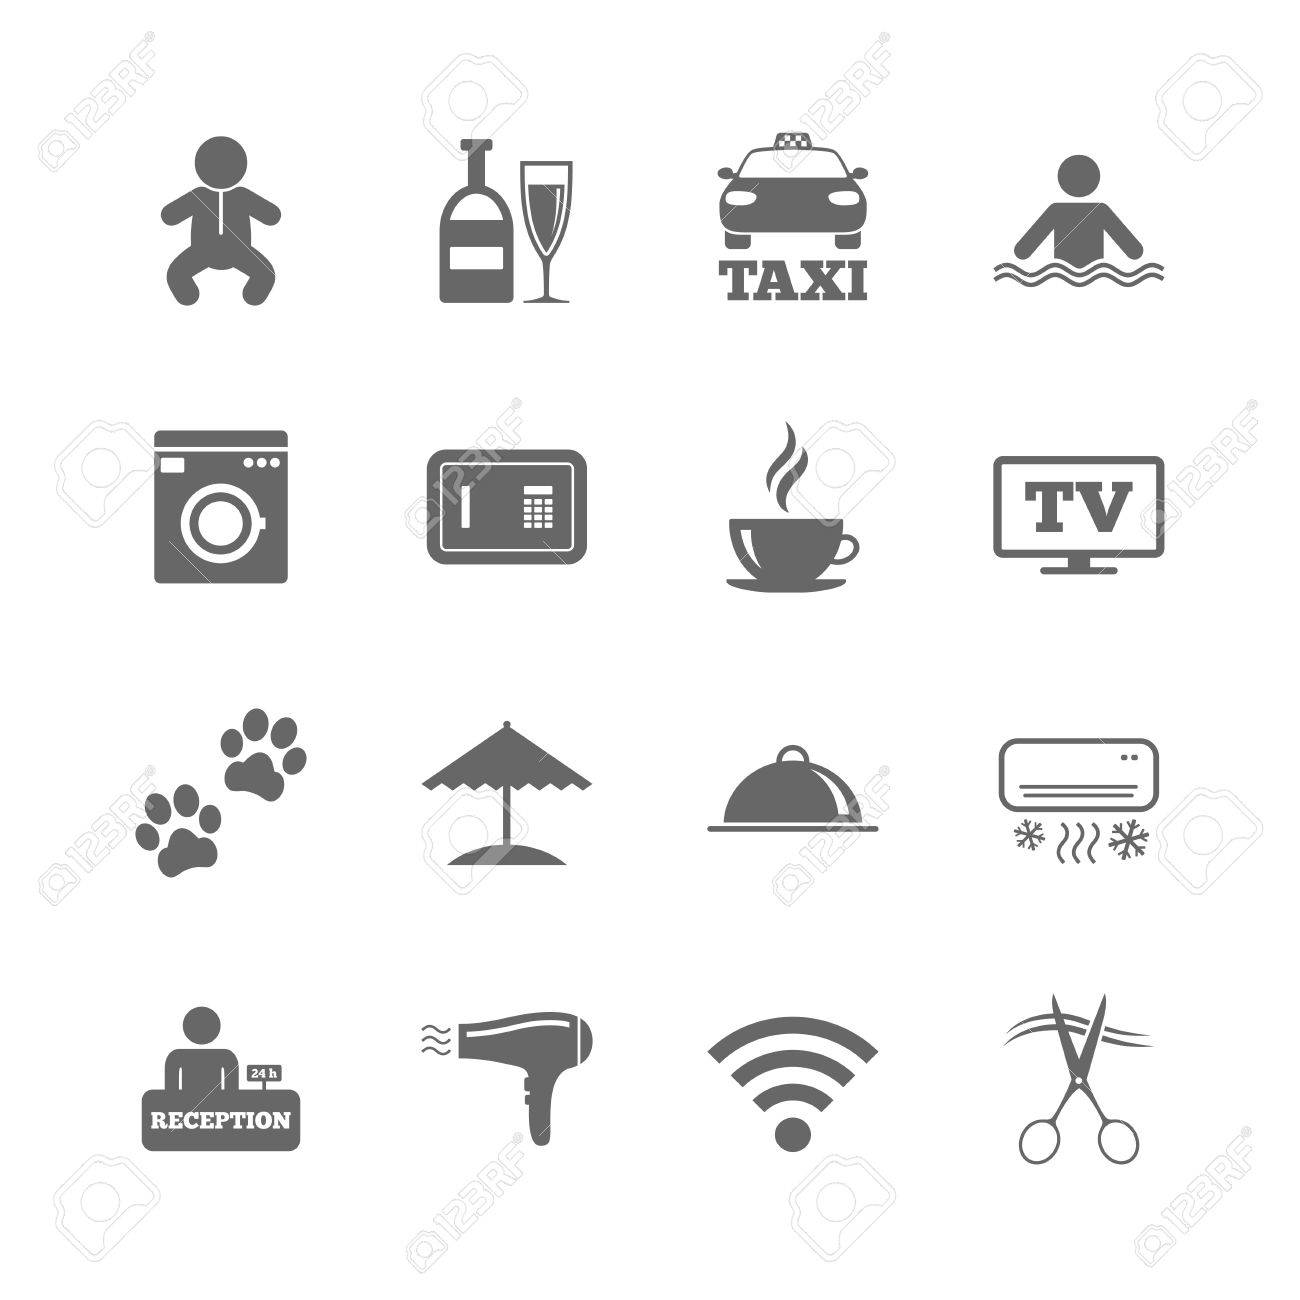 d9b225b6d653 Set Of Hotel Services Icons. Taxi, Wifi Internet And Swimming ...